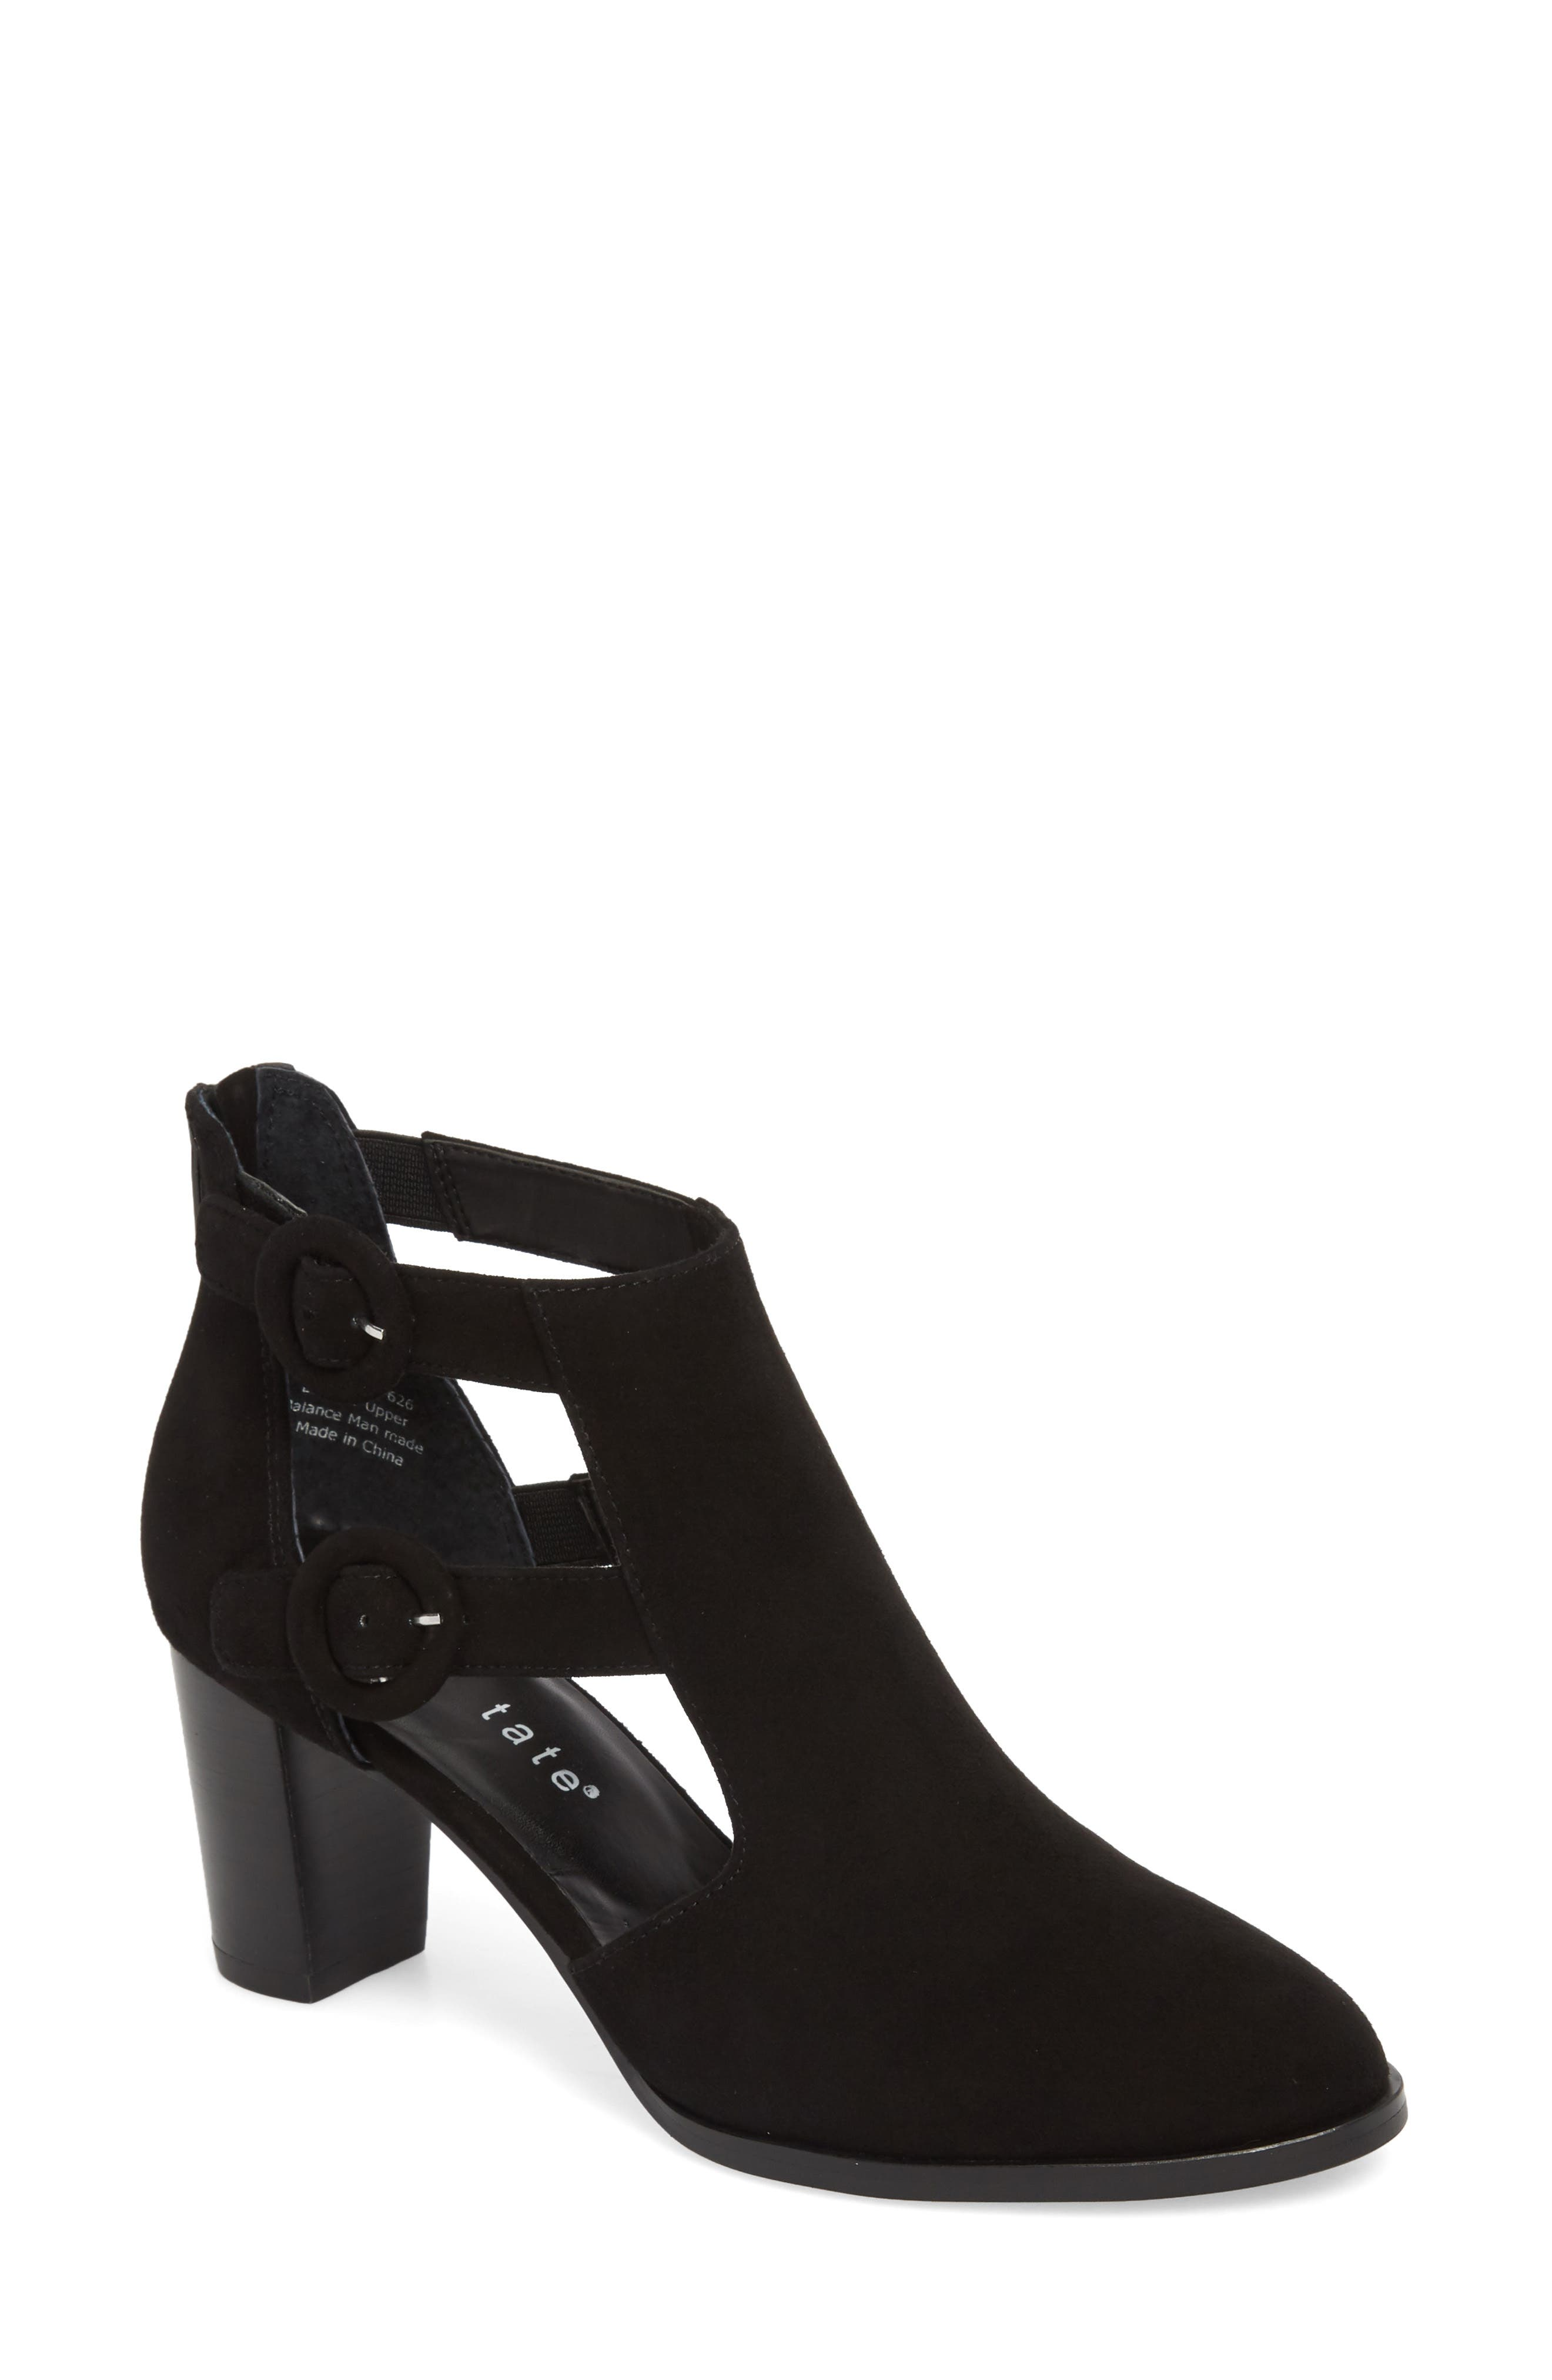 Exotic Caged Bootie,                             Main thumbnail 1, color,                             Black Suede